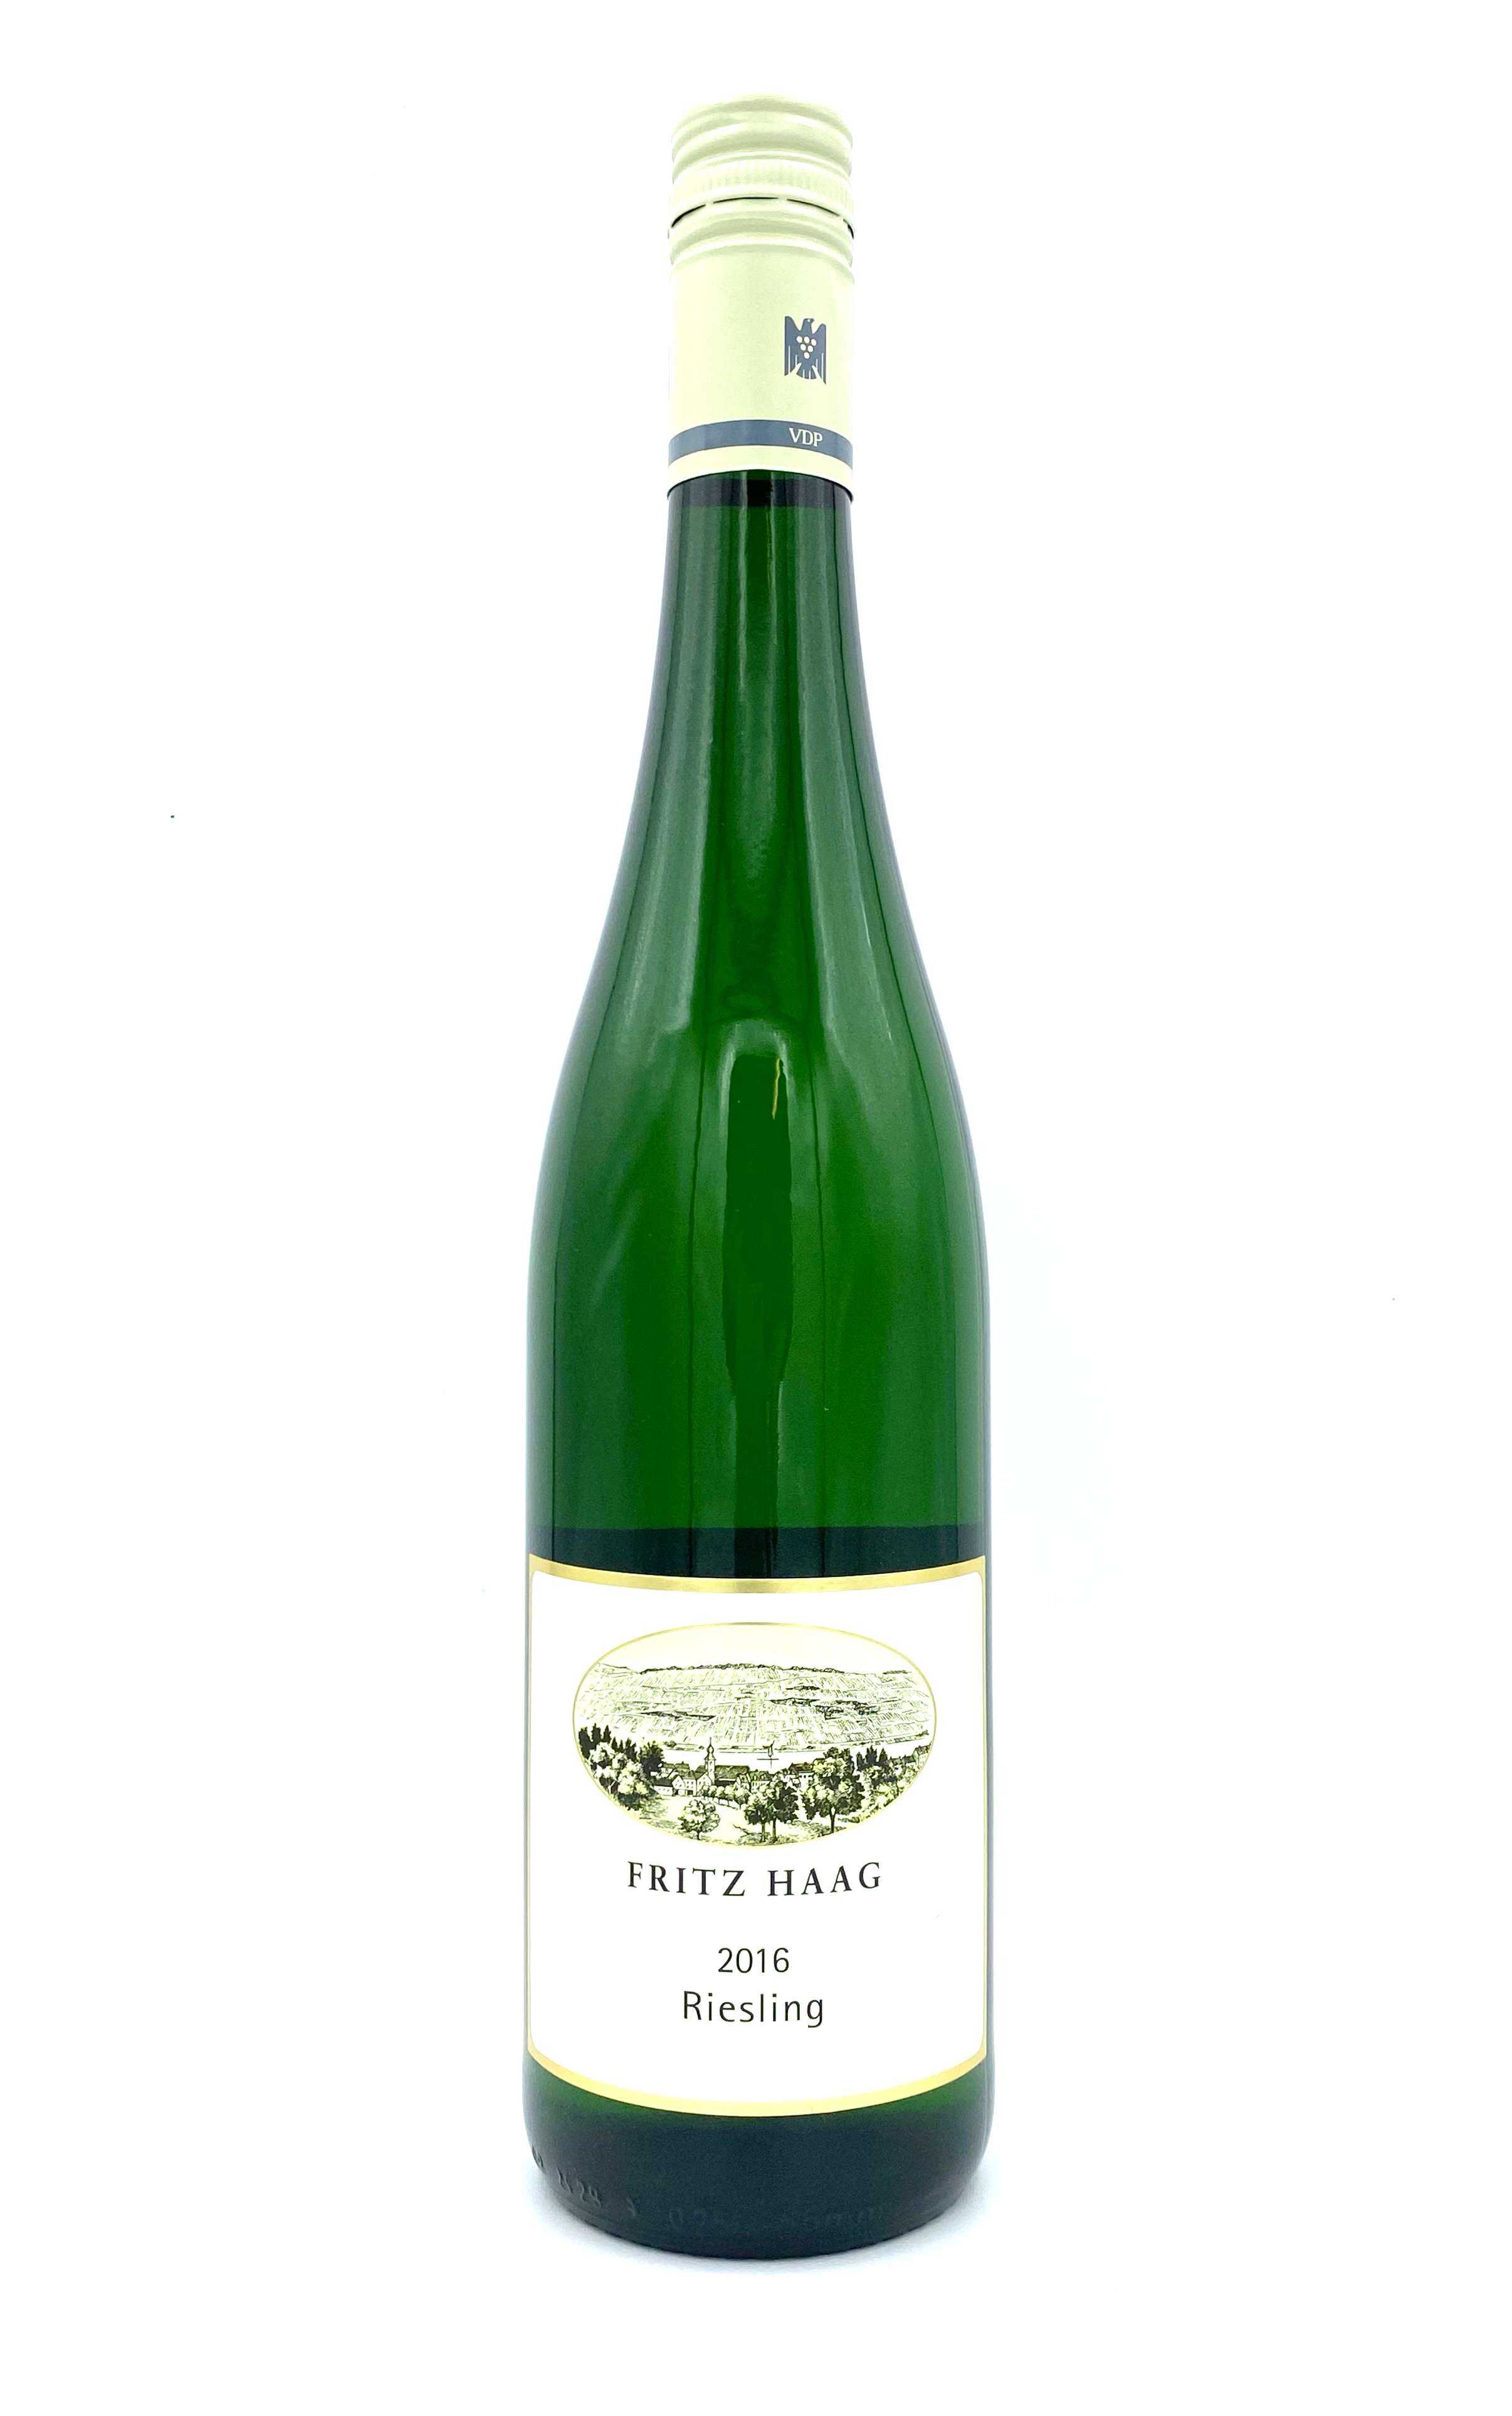 Fritz Haag Riesling Wines